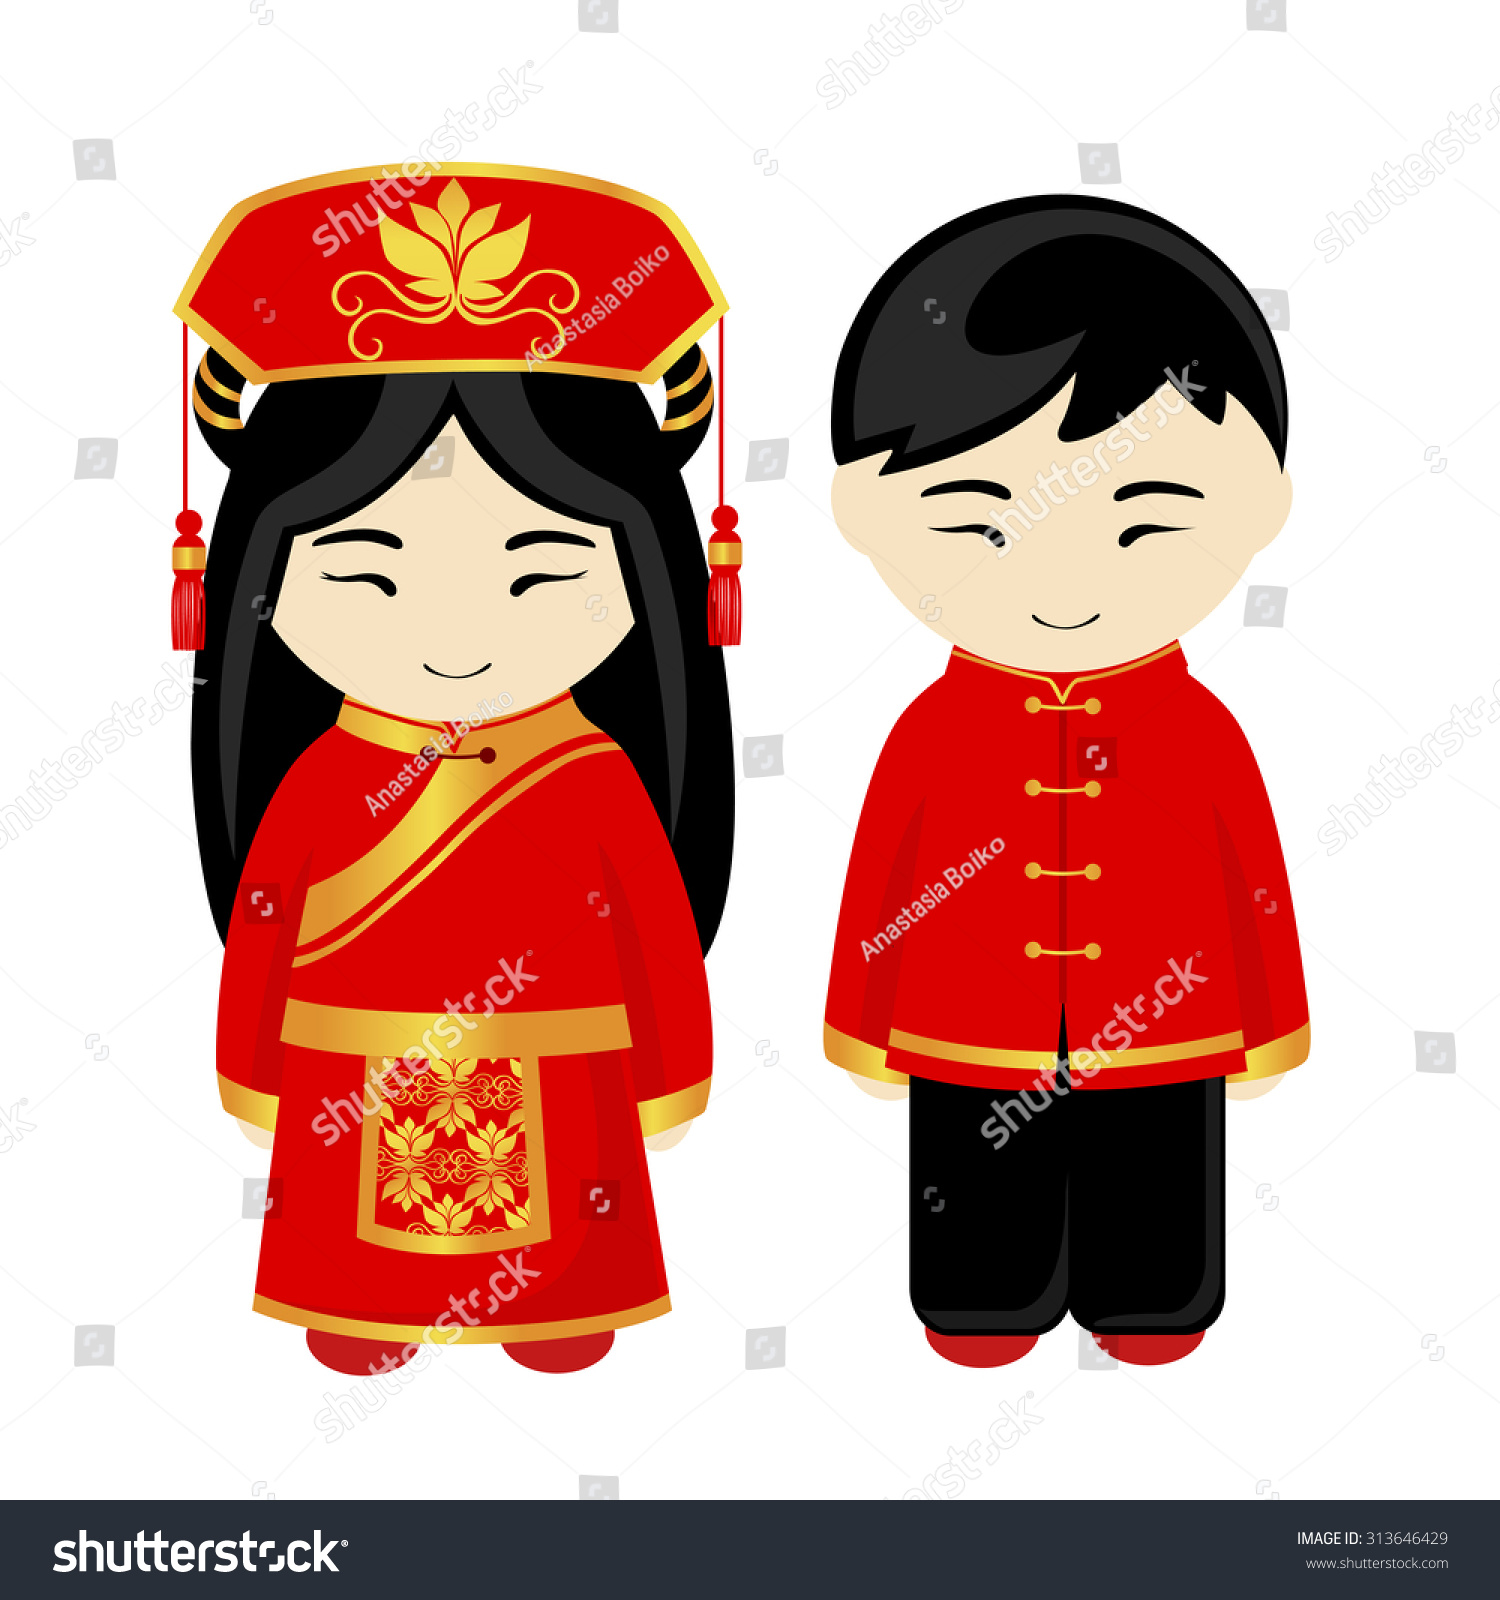 Chinese Man Chinese Woman Chinese People Stock Vector (Royalty Free.